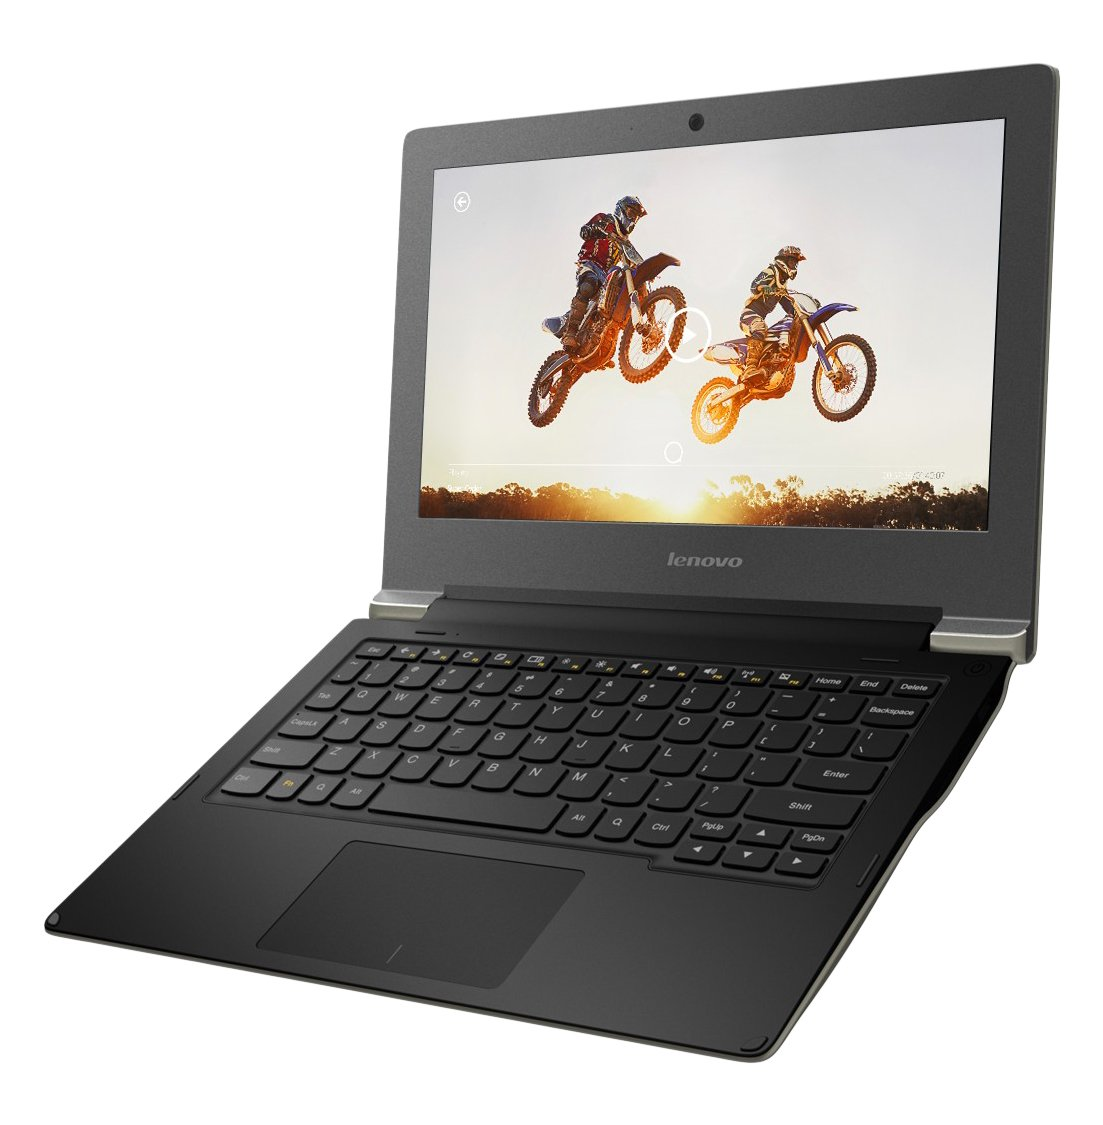 Lenovo S21e 80M4002DUS 11.6-Inches Laptop (Intel Celeron N2840 2.1 GHz Processor, 2 GB DDR3 RAM, 32 GB SSD, Windows 8.1 Operating System)